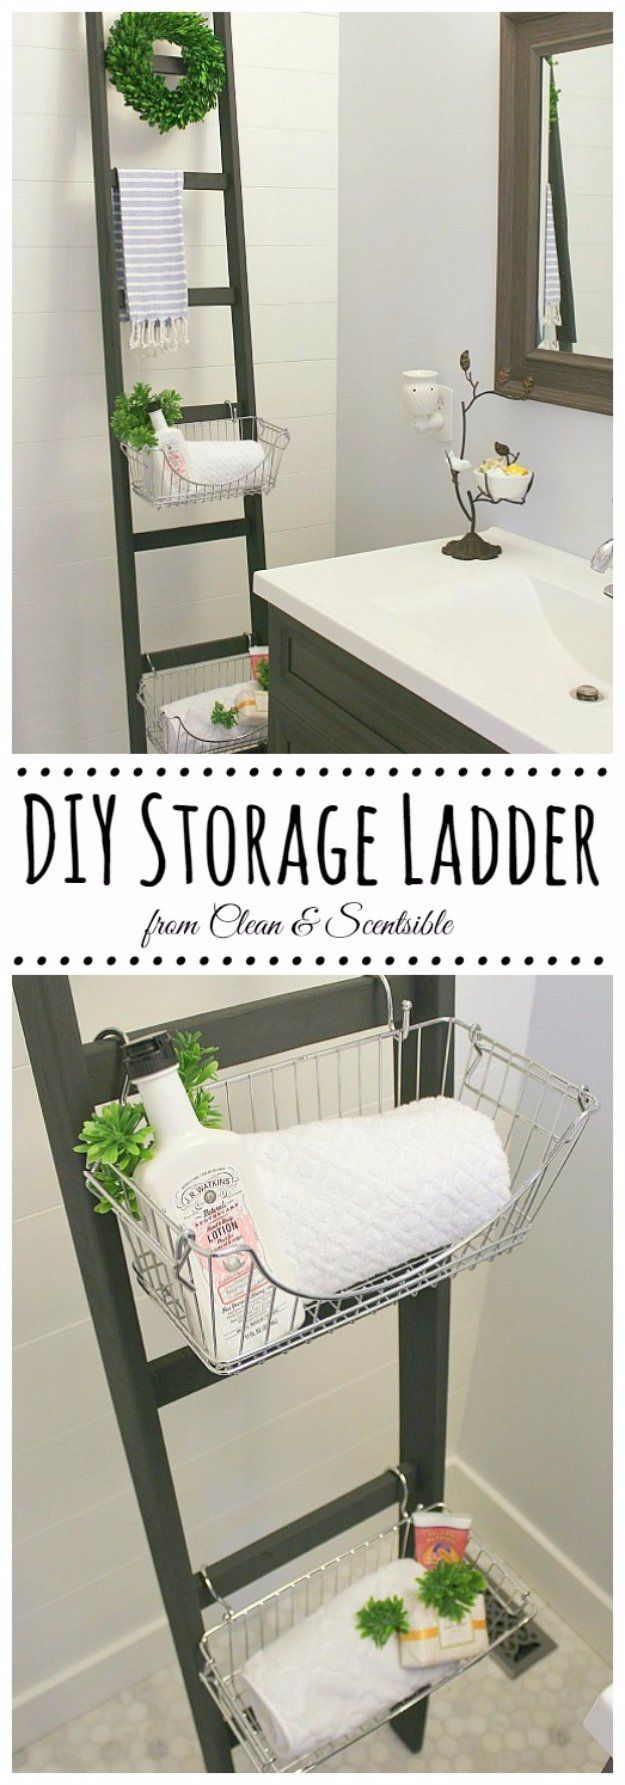 Best 25+ Bathroom ladder ideas on Pinterest | Bathroom ladder ...